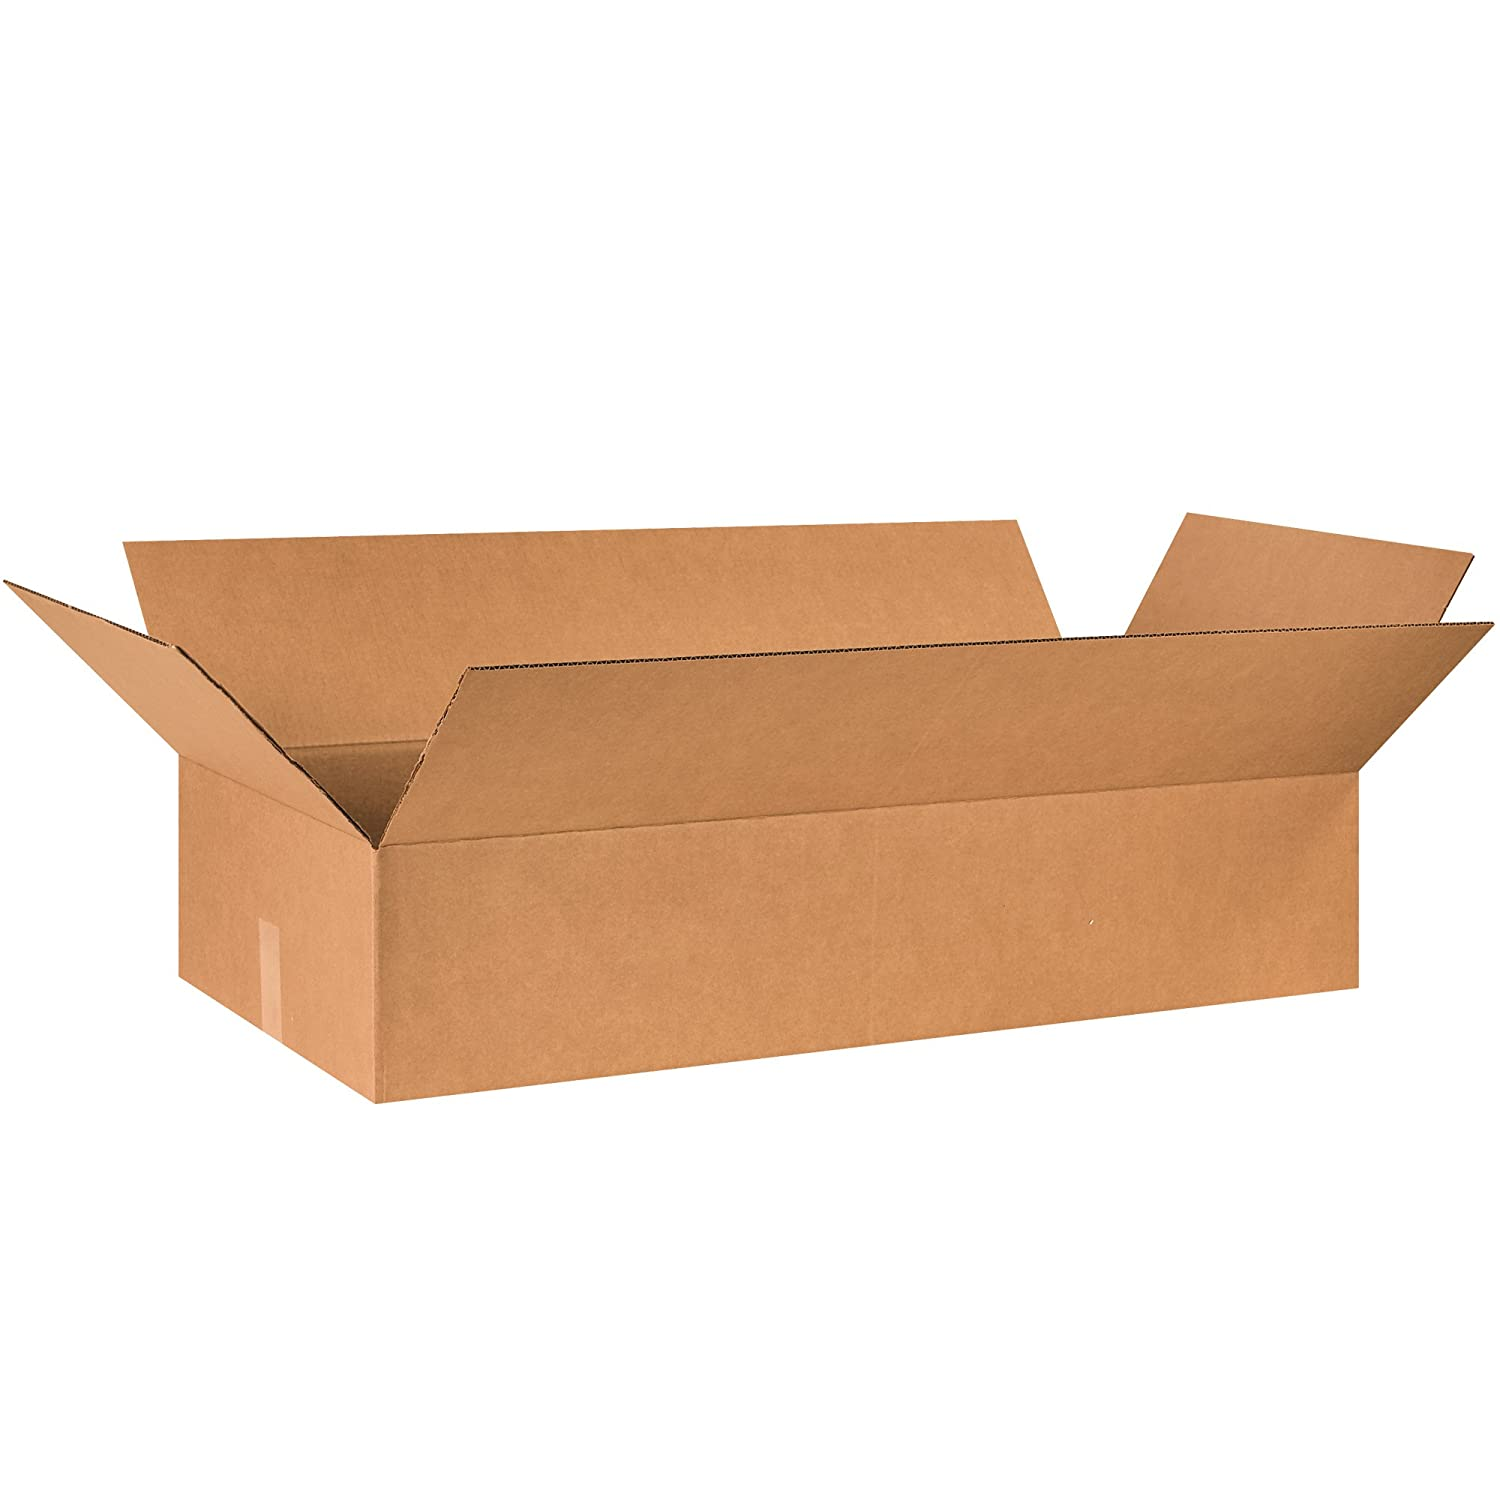 50-20 x 8 x 8 Corrugated Shipping Boxes Packing Storage Cartons Cardboard Box